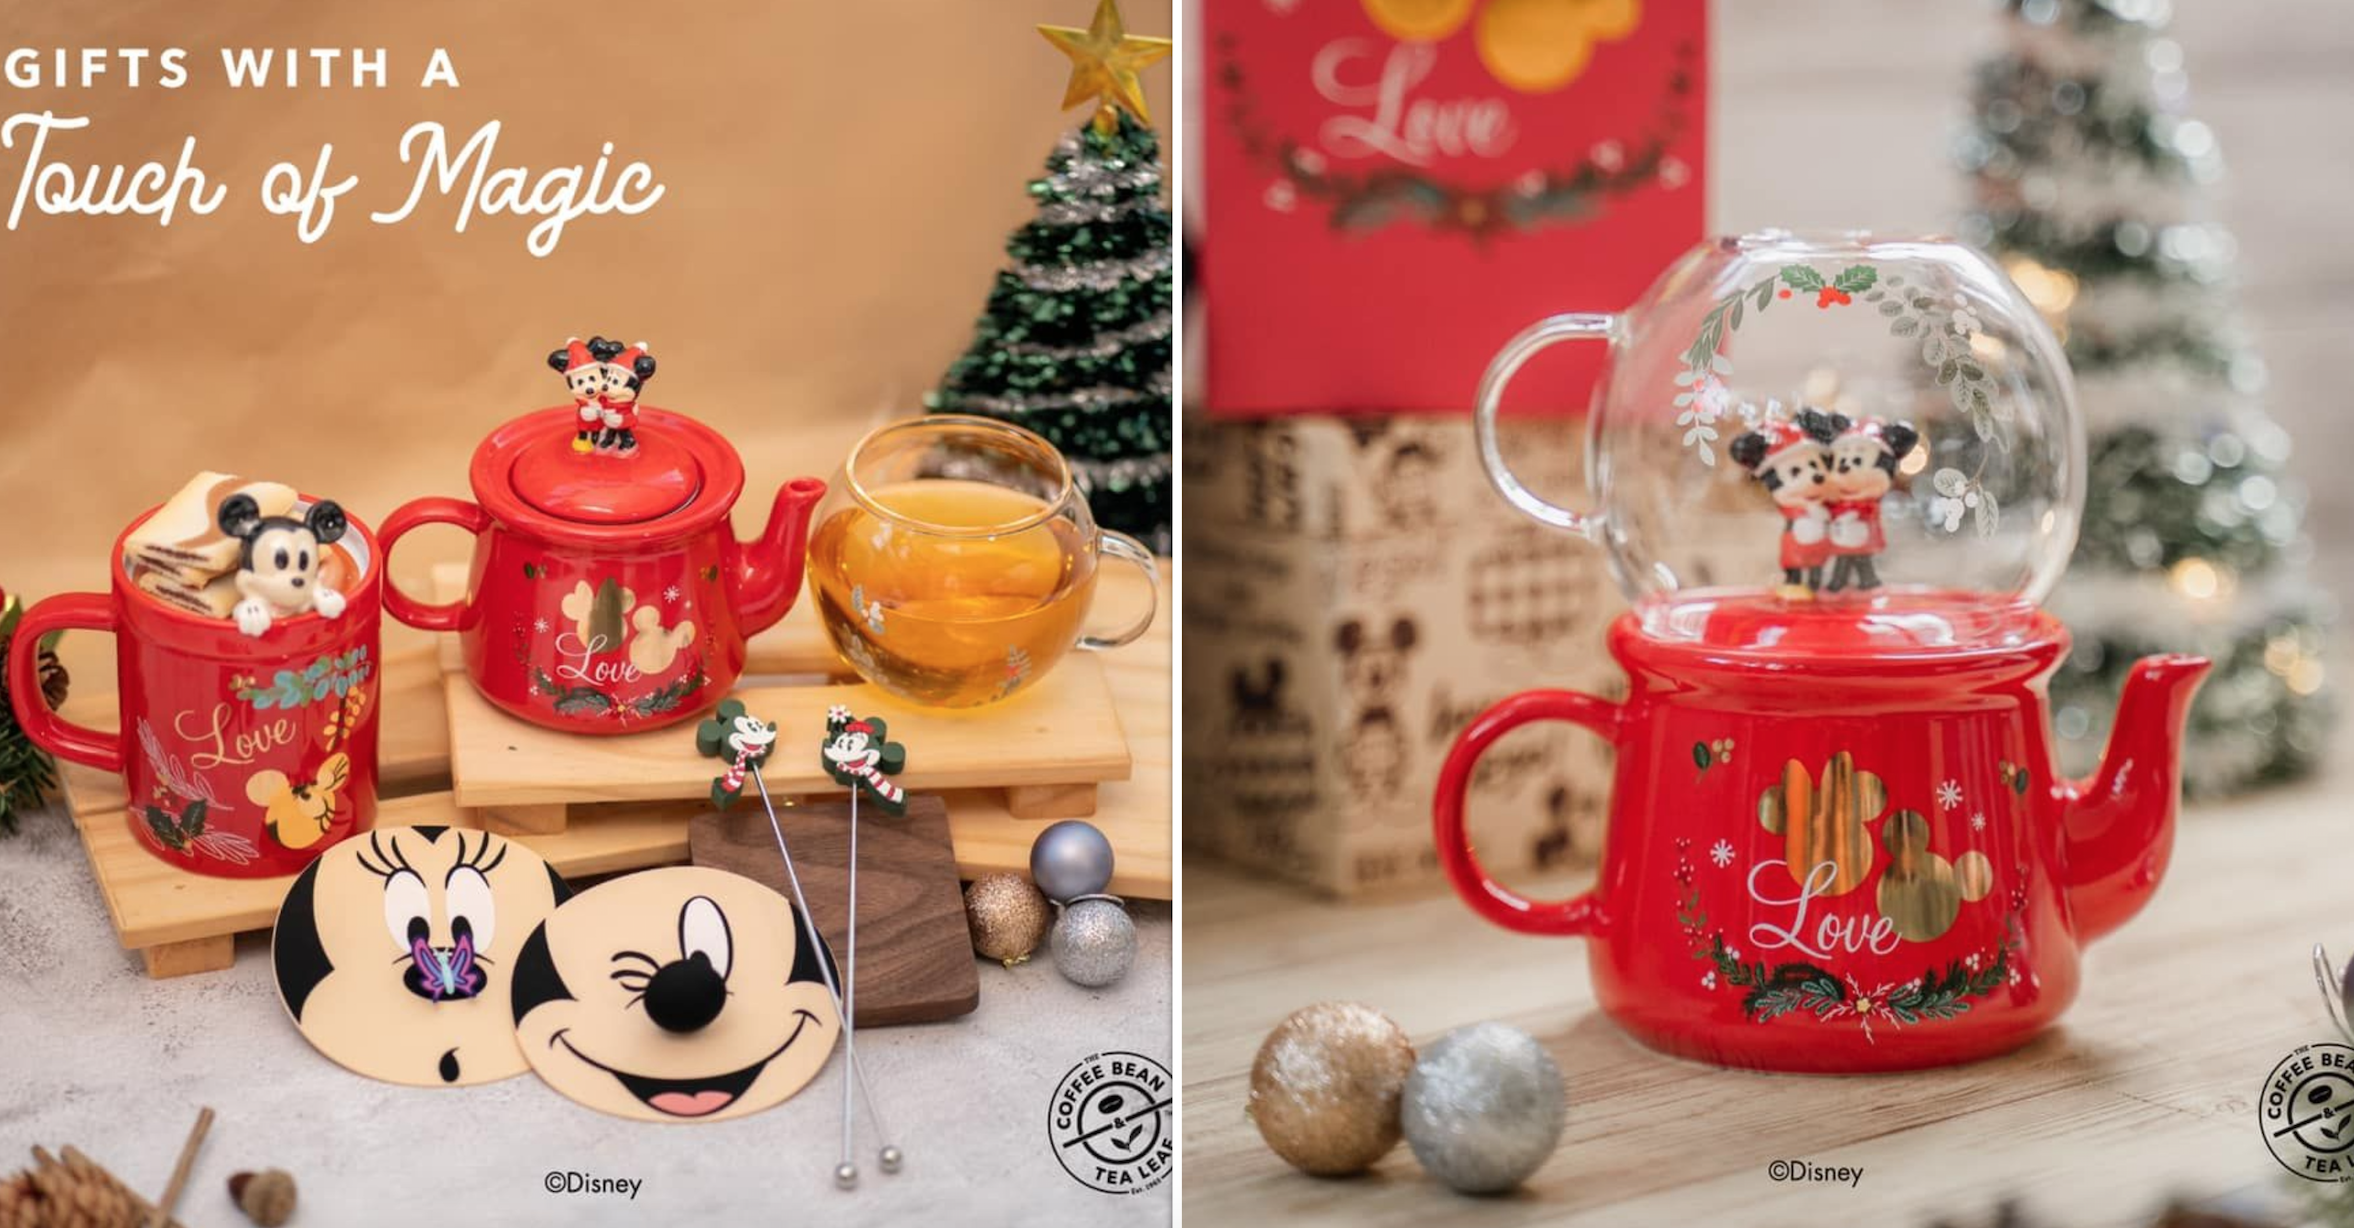 Coffee Bean S Pore Launches Mickey Minnie Drink Ware For Christmas 2020 Mothership Sg News From Singapore Asia And Around The World